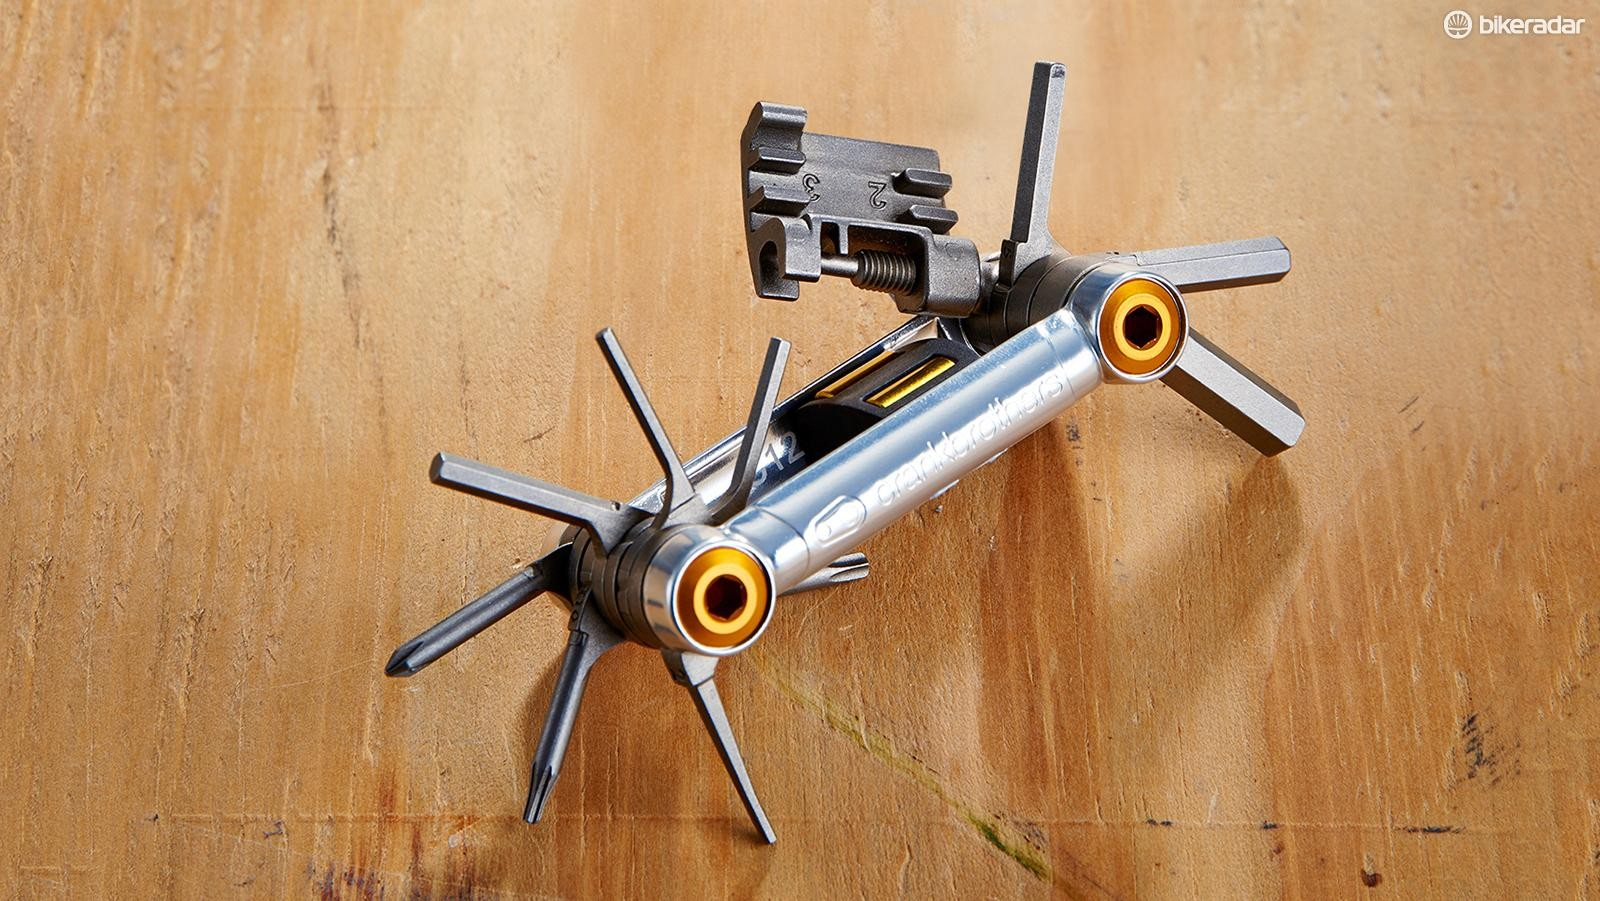 Crankbrothers Pica+ multi-tool